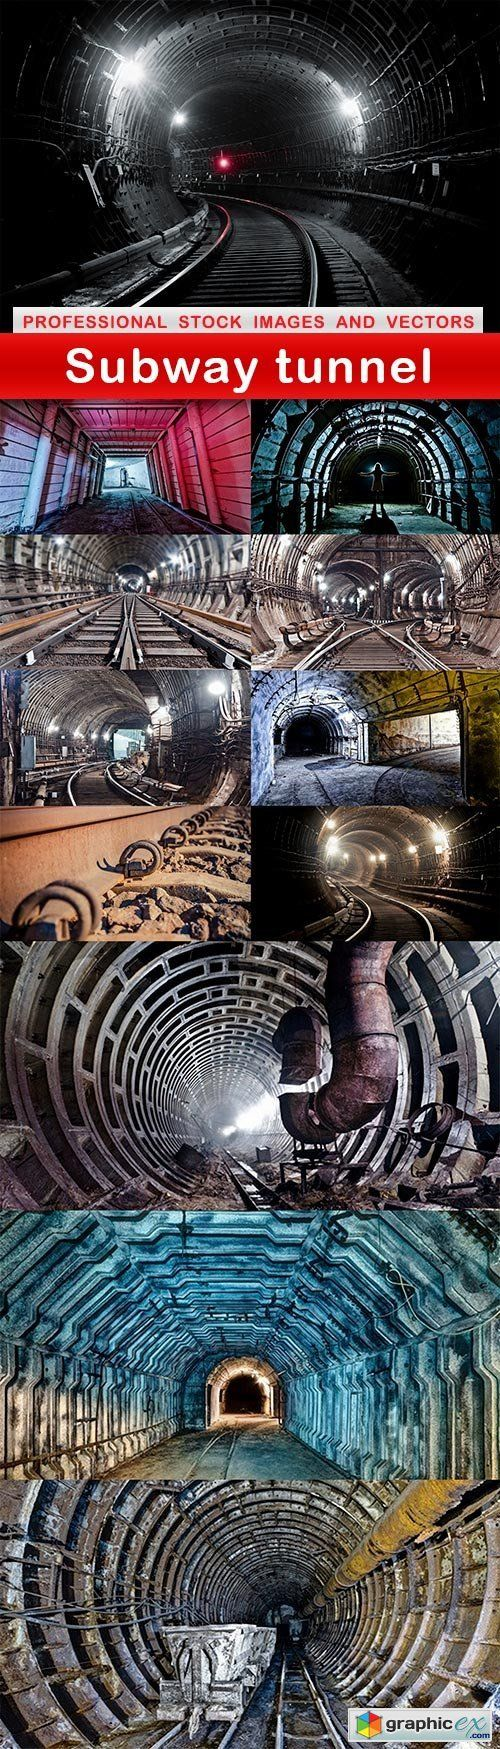 http://graphicex.com/stock-image/stock-verhicles-transport/66986-subway-tunnel-12-uhq-jpeg.html